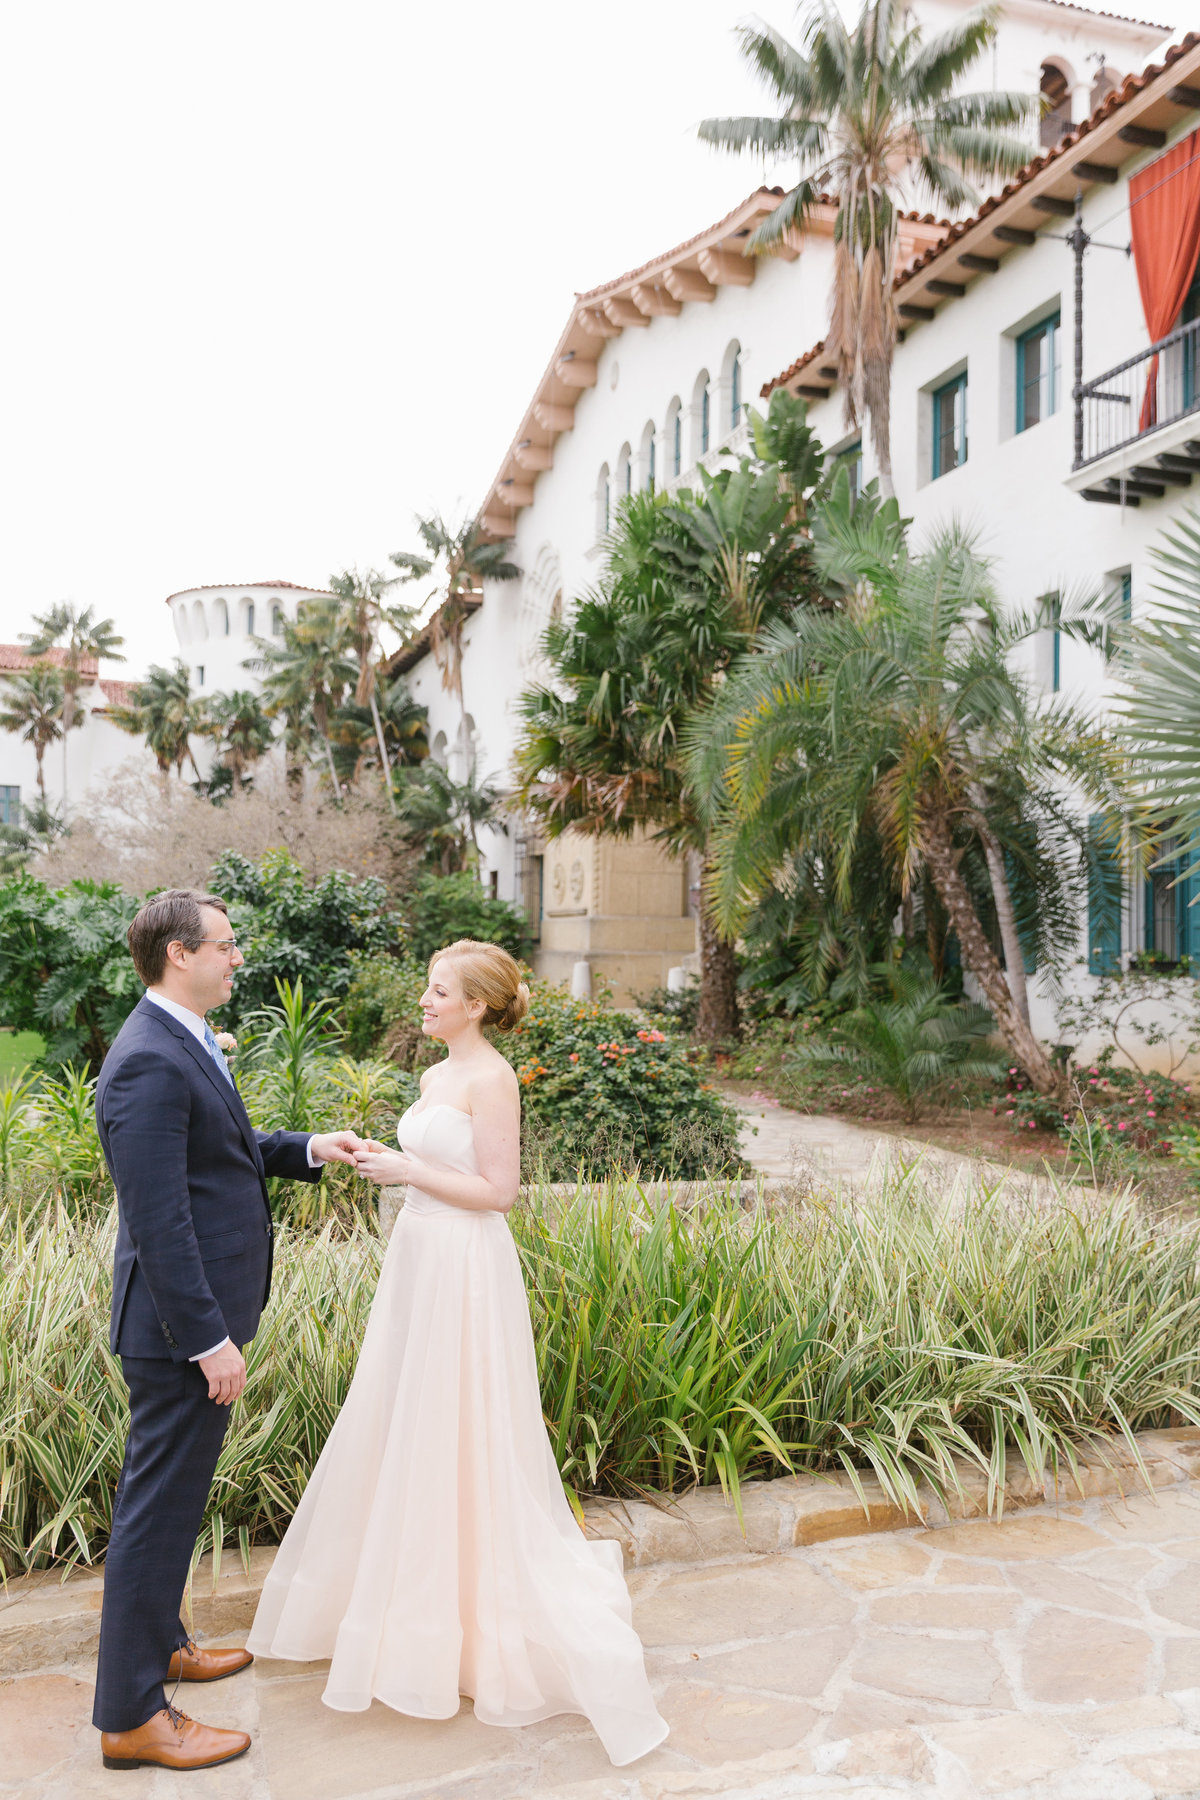 Intimate-Romantic-Santa-Barbara-Wedding-Venue-12